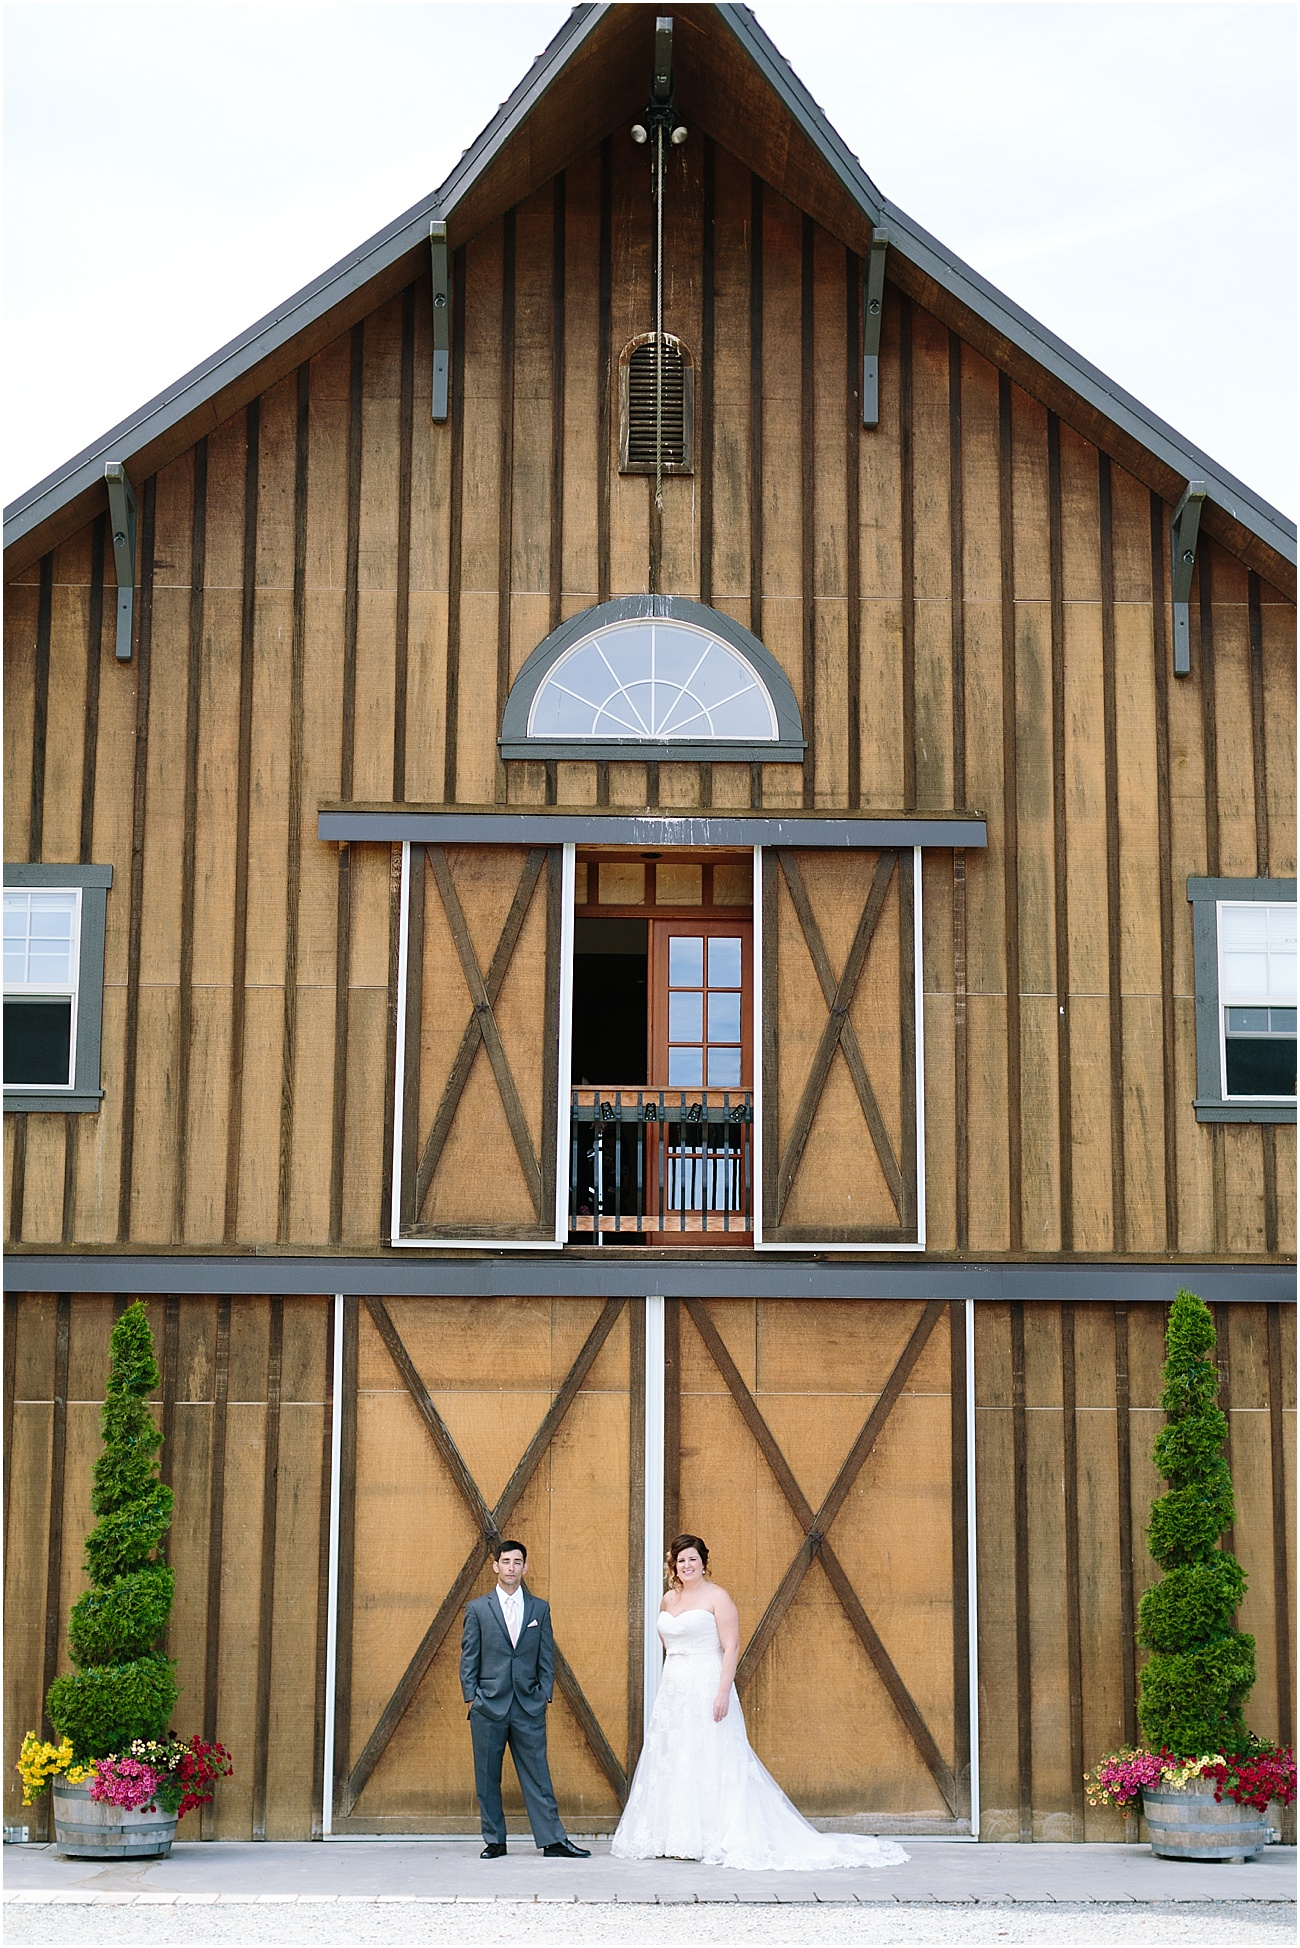 Tauzin_Wedding_Tazer_Valley_Farm_Stanwood_Washington__0029